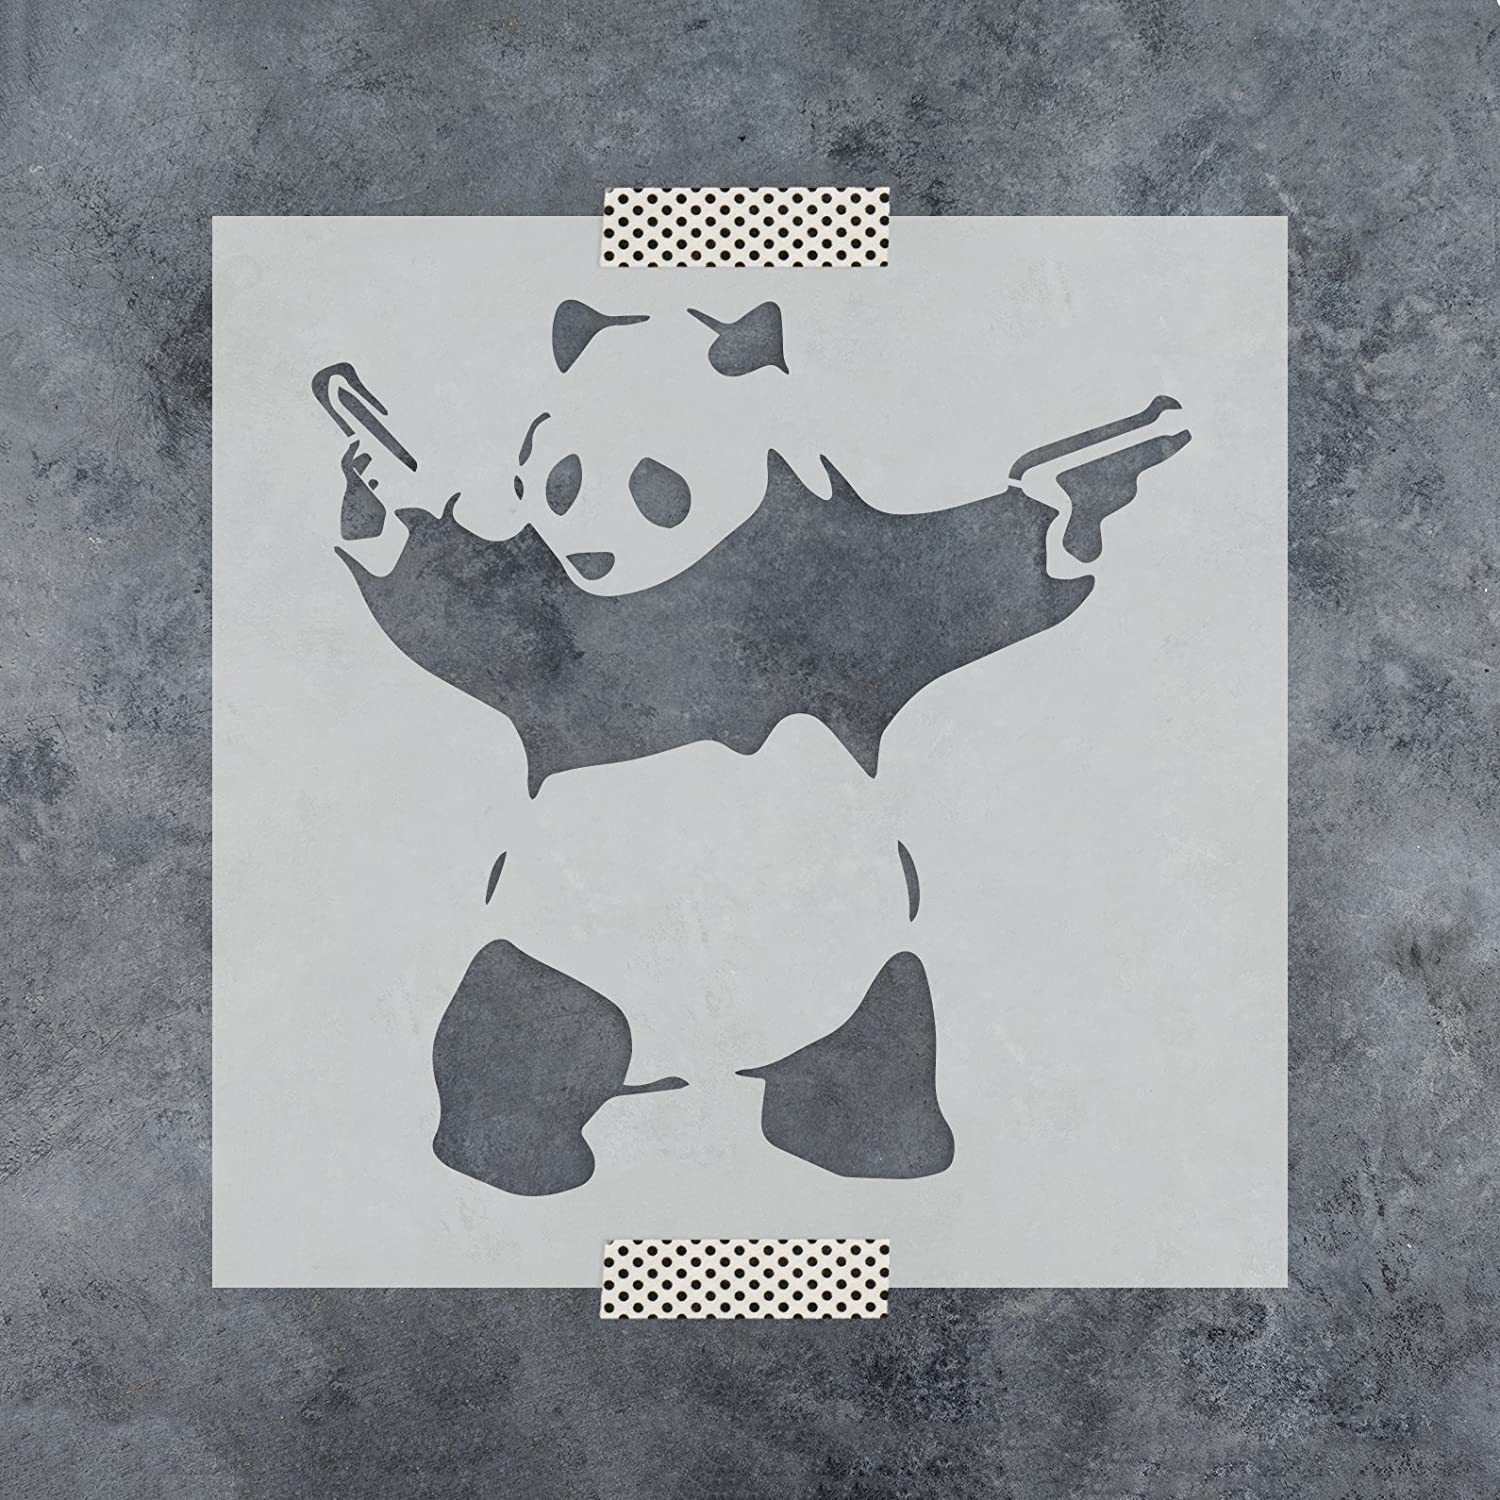 Amazon.com: Panda with Guns Banksy Stencil for Walls and Crafts - Reusable Stencils of Panda with Guns by Banksy for Painting in Small & Large Sizes - Made ...